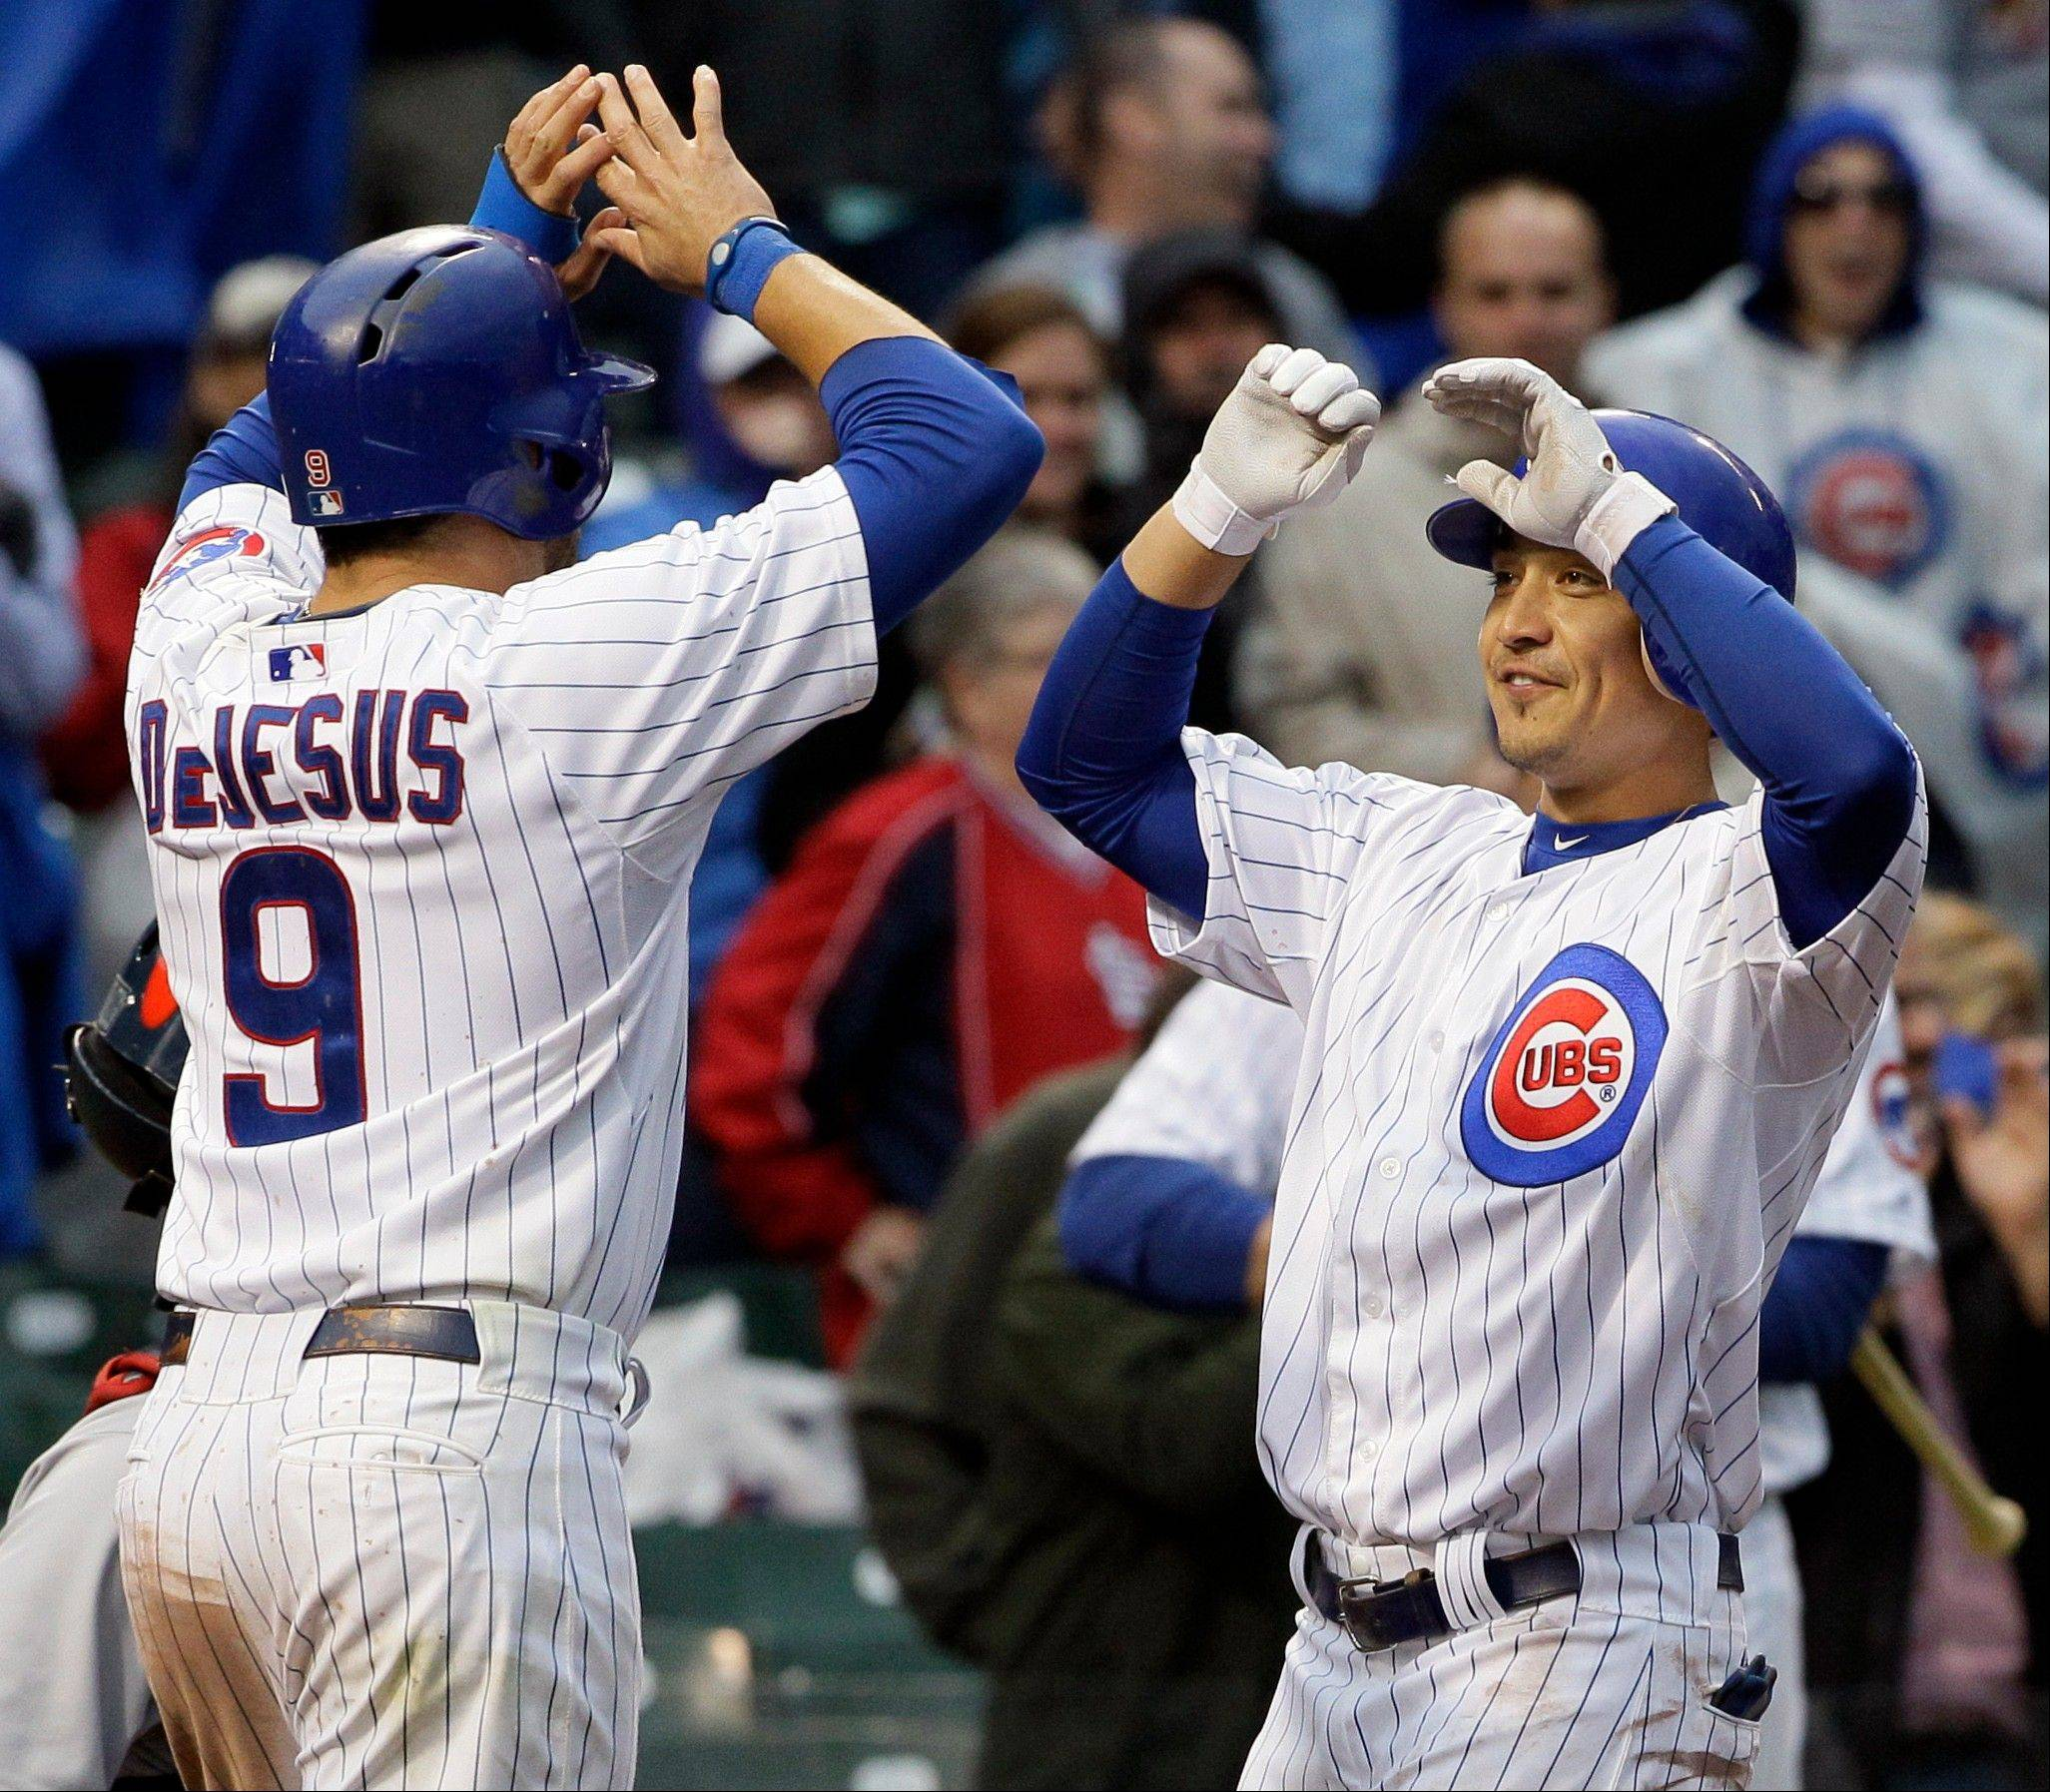 Chicago Cubs' Darwin Barney, right, celebrates with David DeJesus after hitting a two-run home run during the ninth inning of a baseball game against the St. Louis Cardinals in Chicago, Friday, Sept. 21, 2012. The Cubs won 5-4.